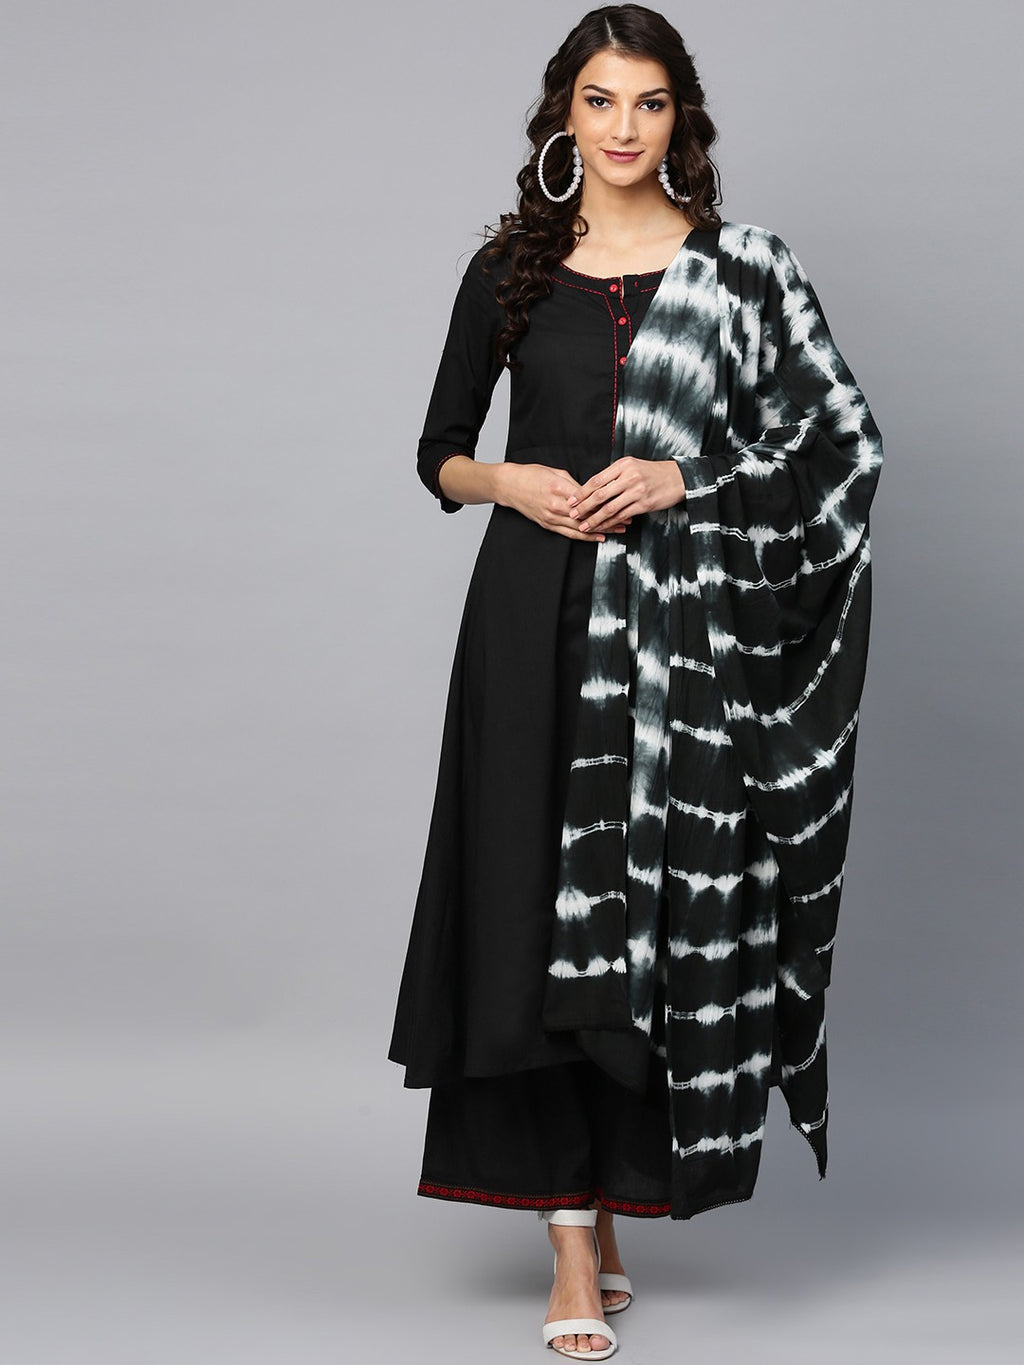 Black Solid A-Line Kurta & Palazzo With Tie & Dye Dupatta (Fully Stitched) | Znx4ever.com